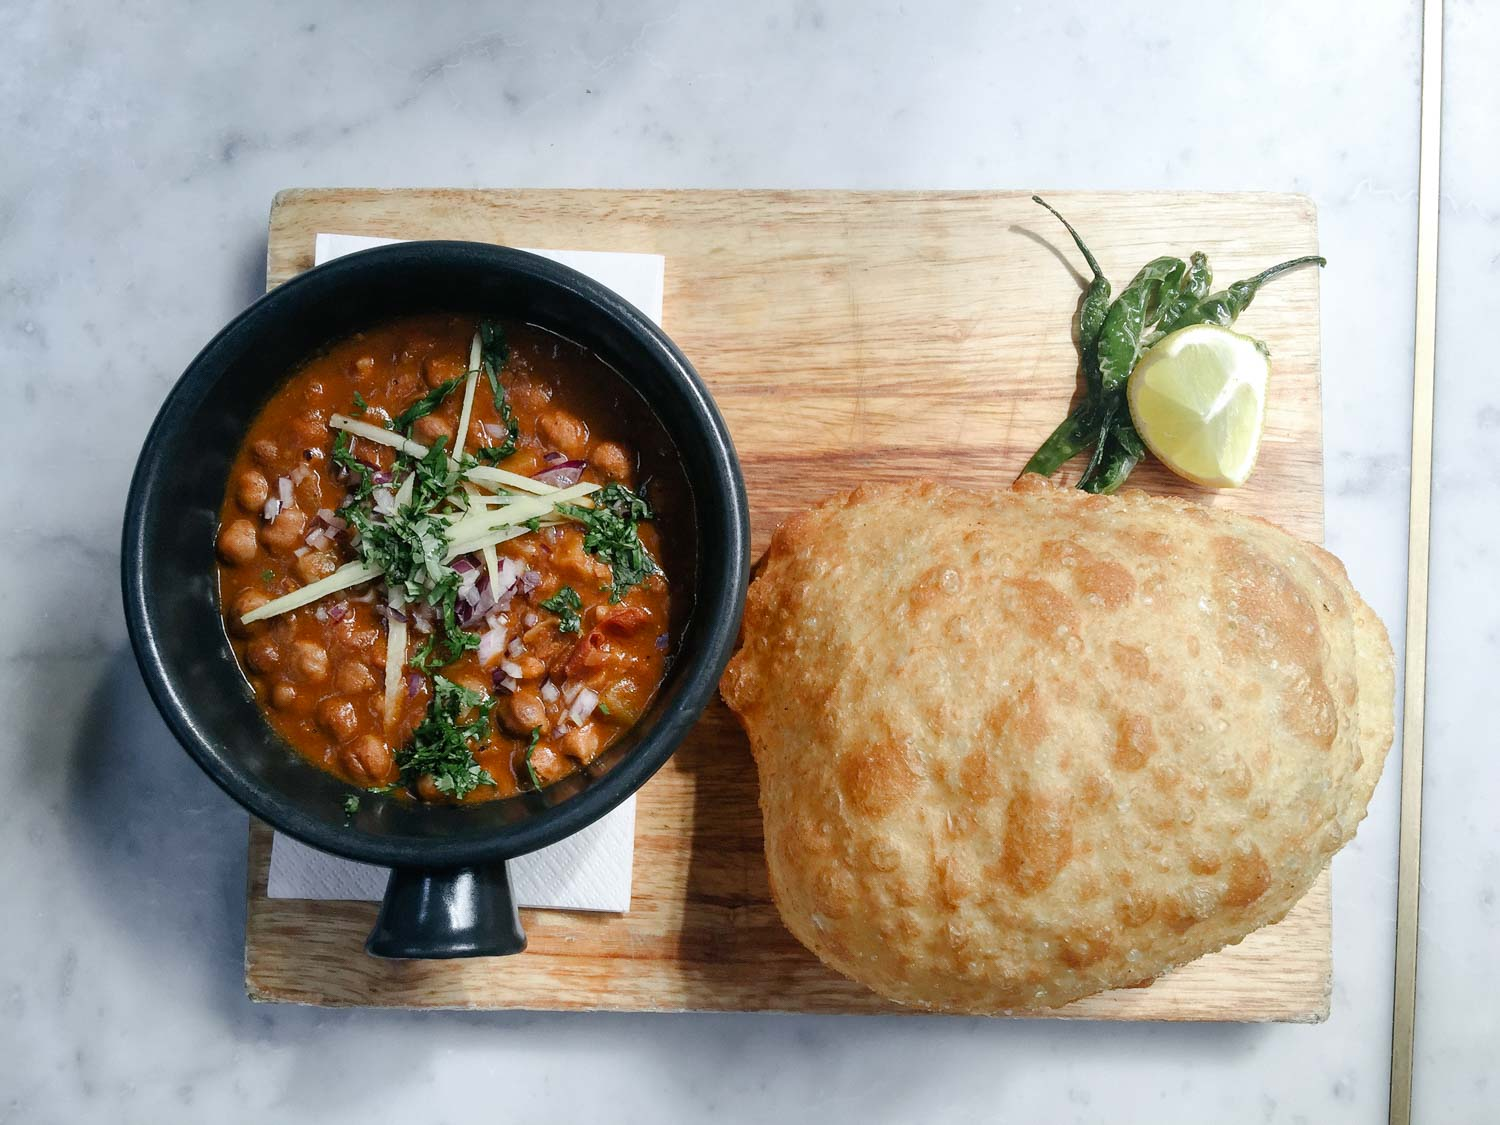 Around the world in 7 London meals – Dishoom